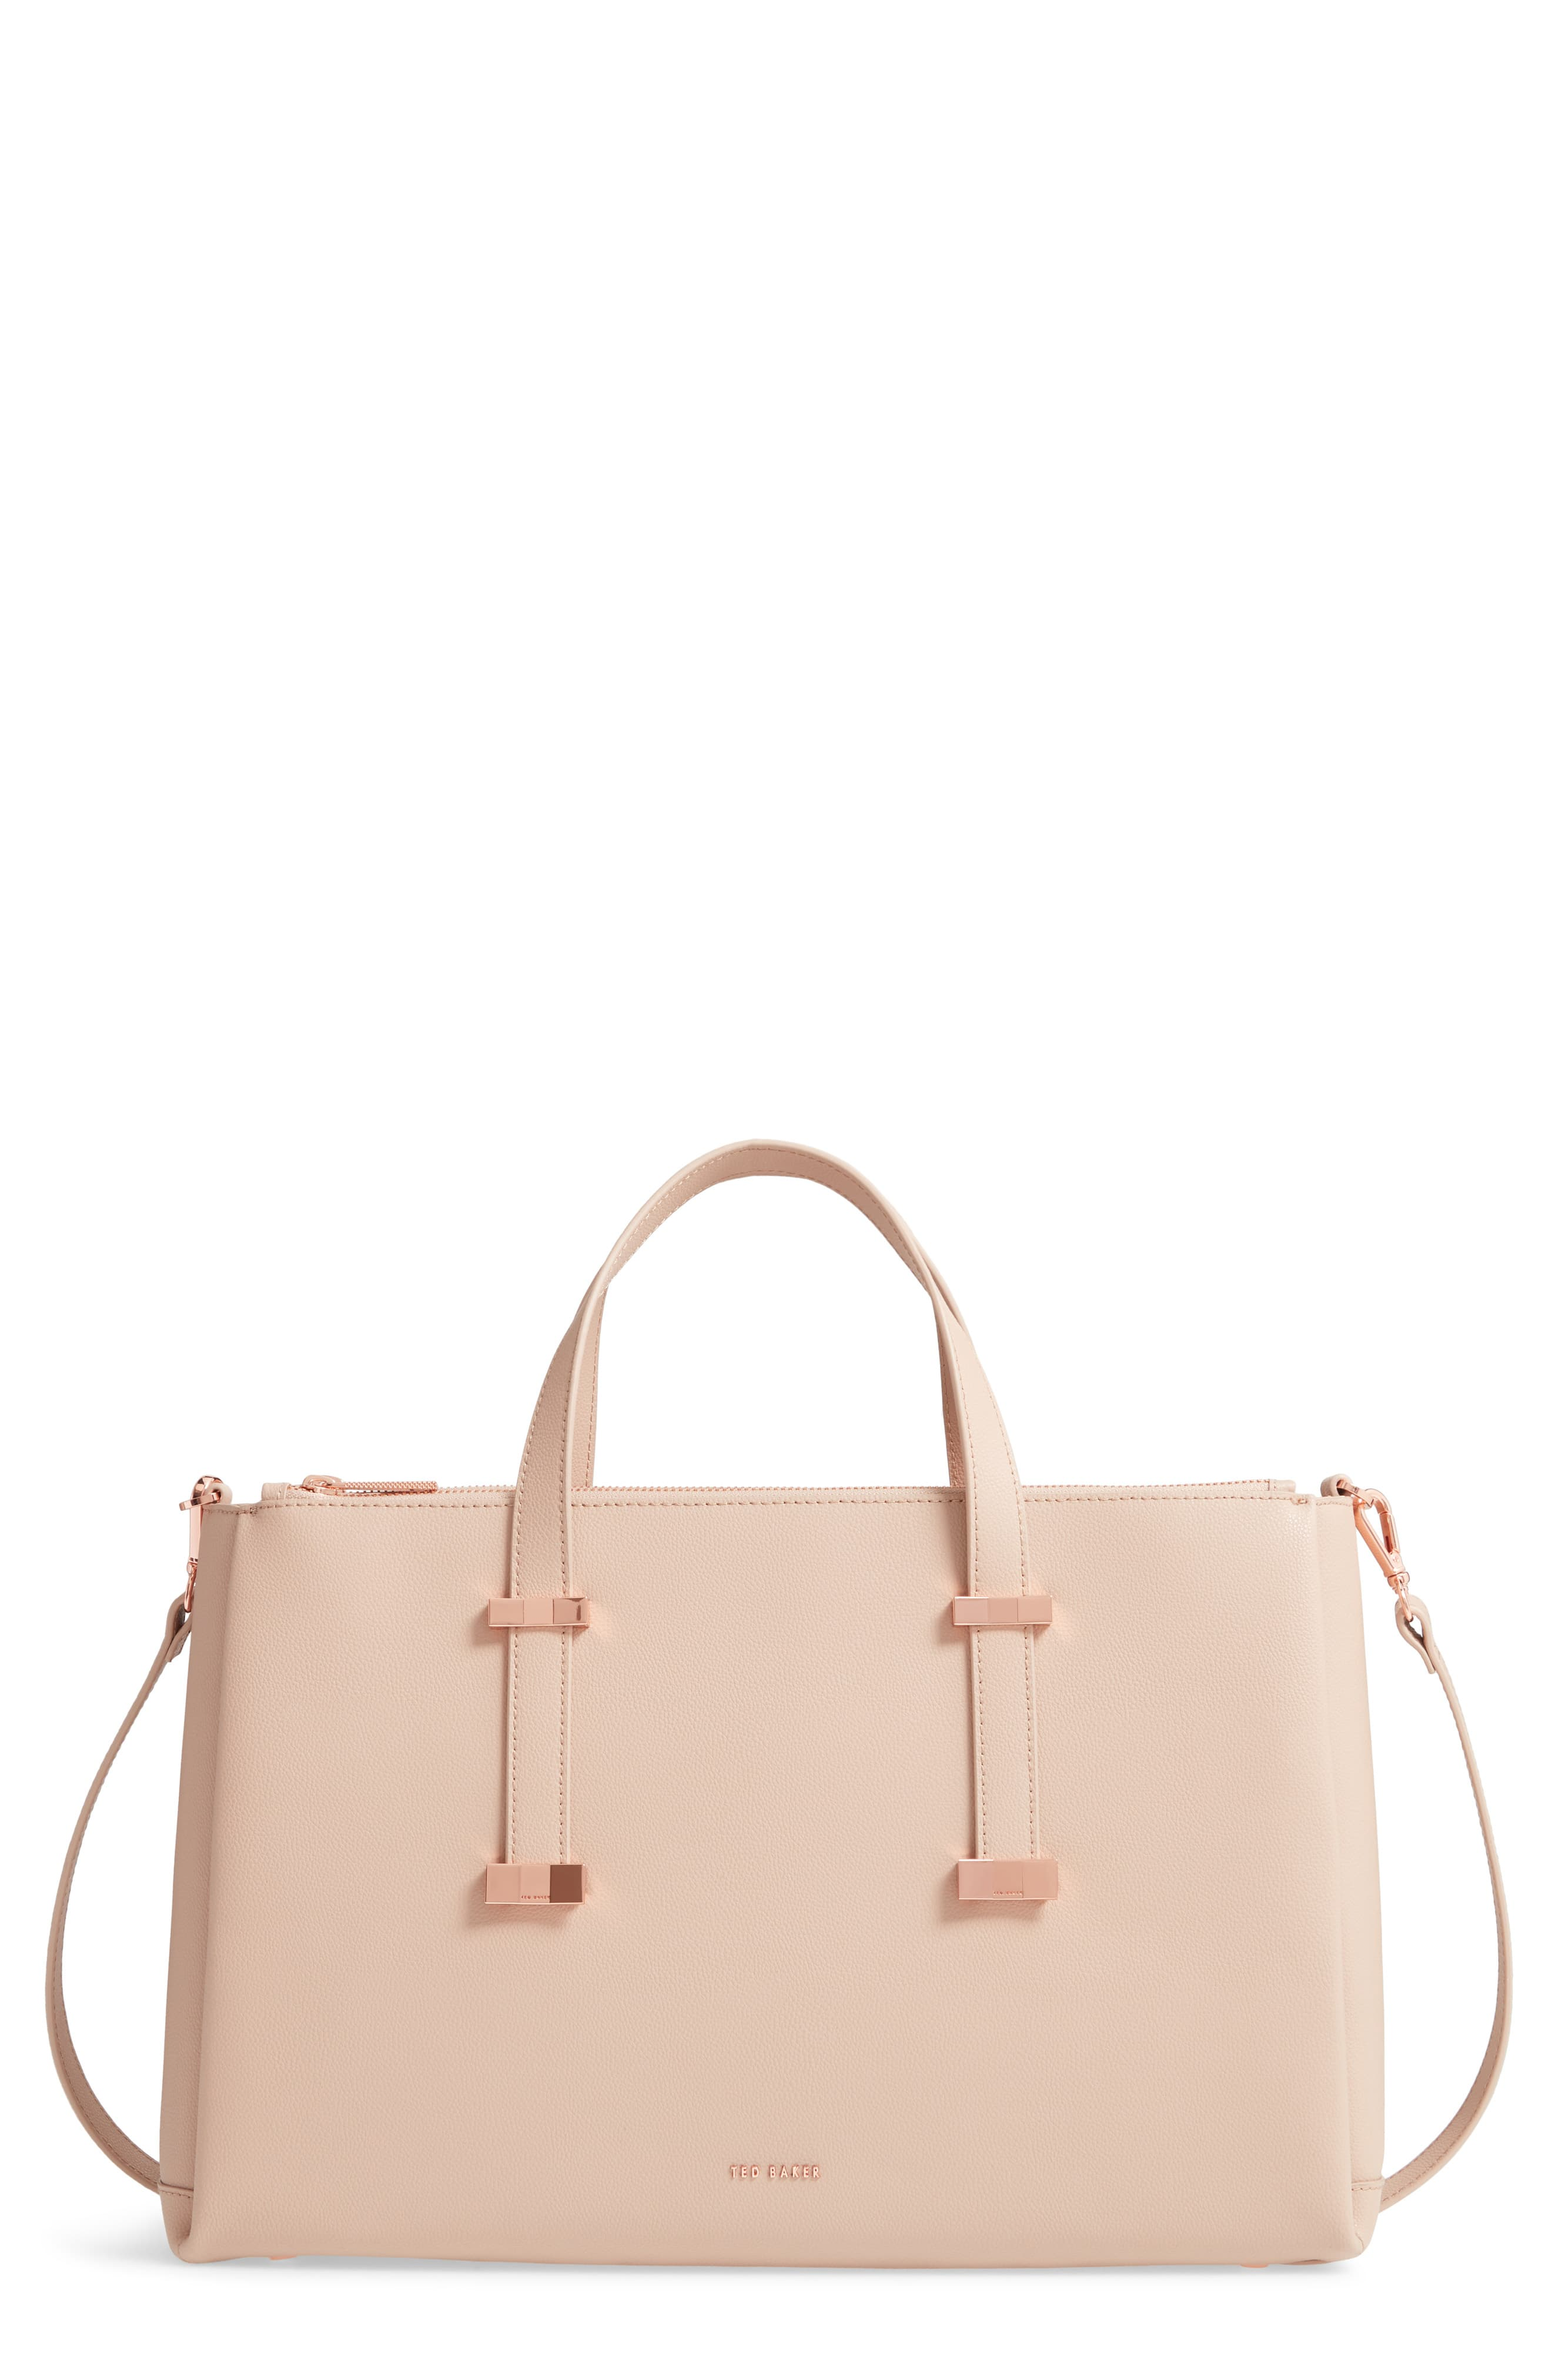 c3e3b41870 Ted Baker Juliea Leather Laptop Bag in 2019 | Products | Leather ...